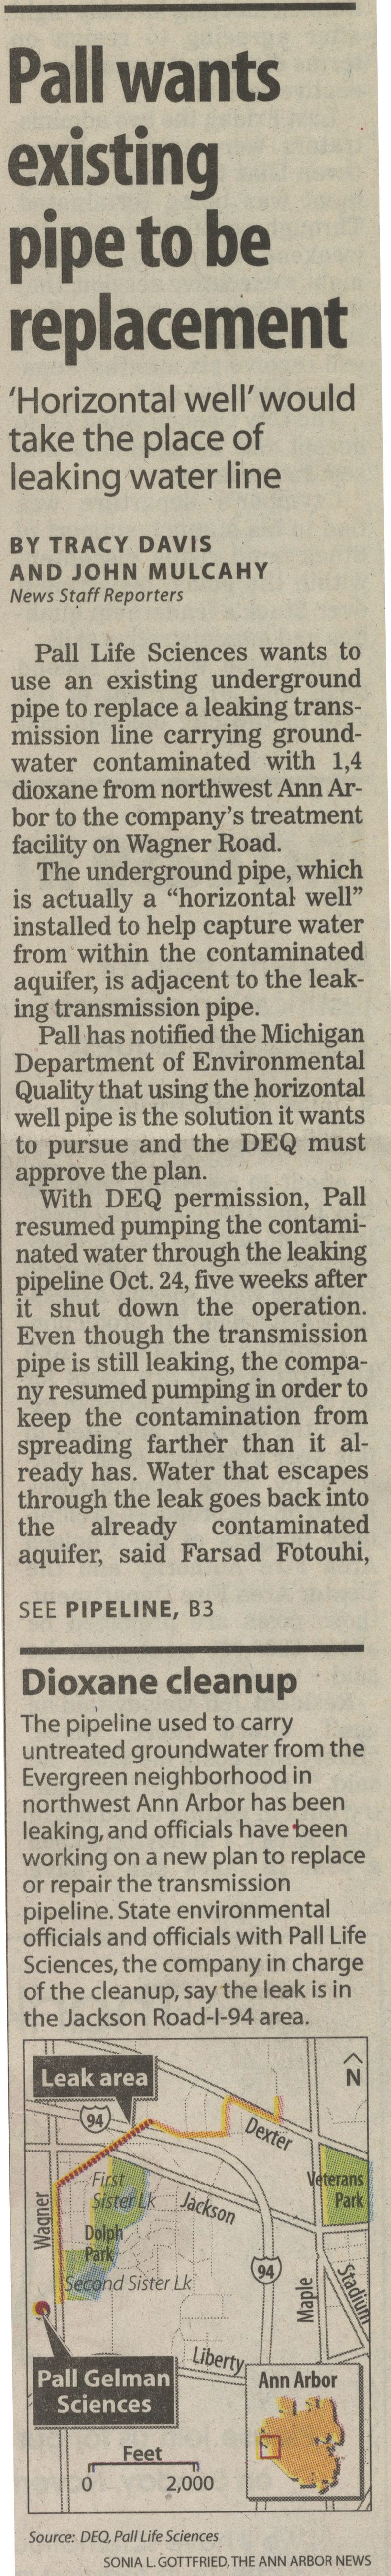 Pall Wants Existing Pipe To Be Replacement image